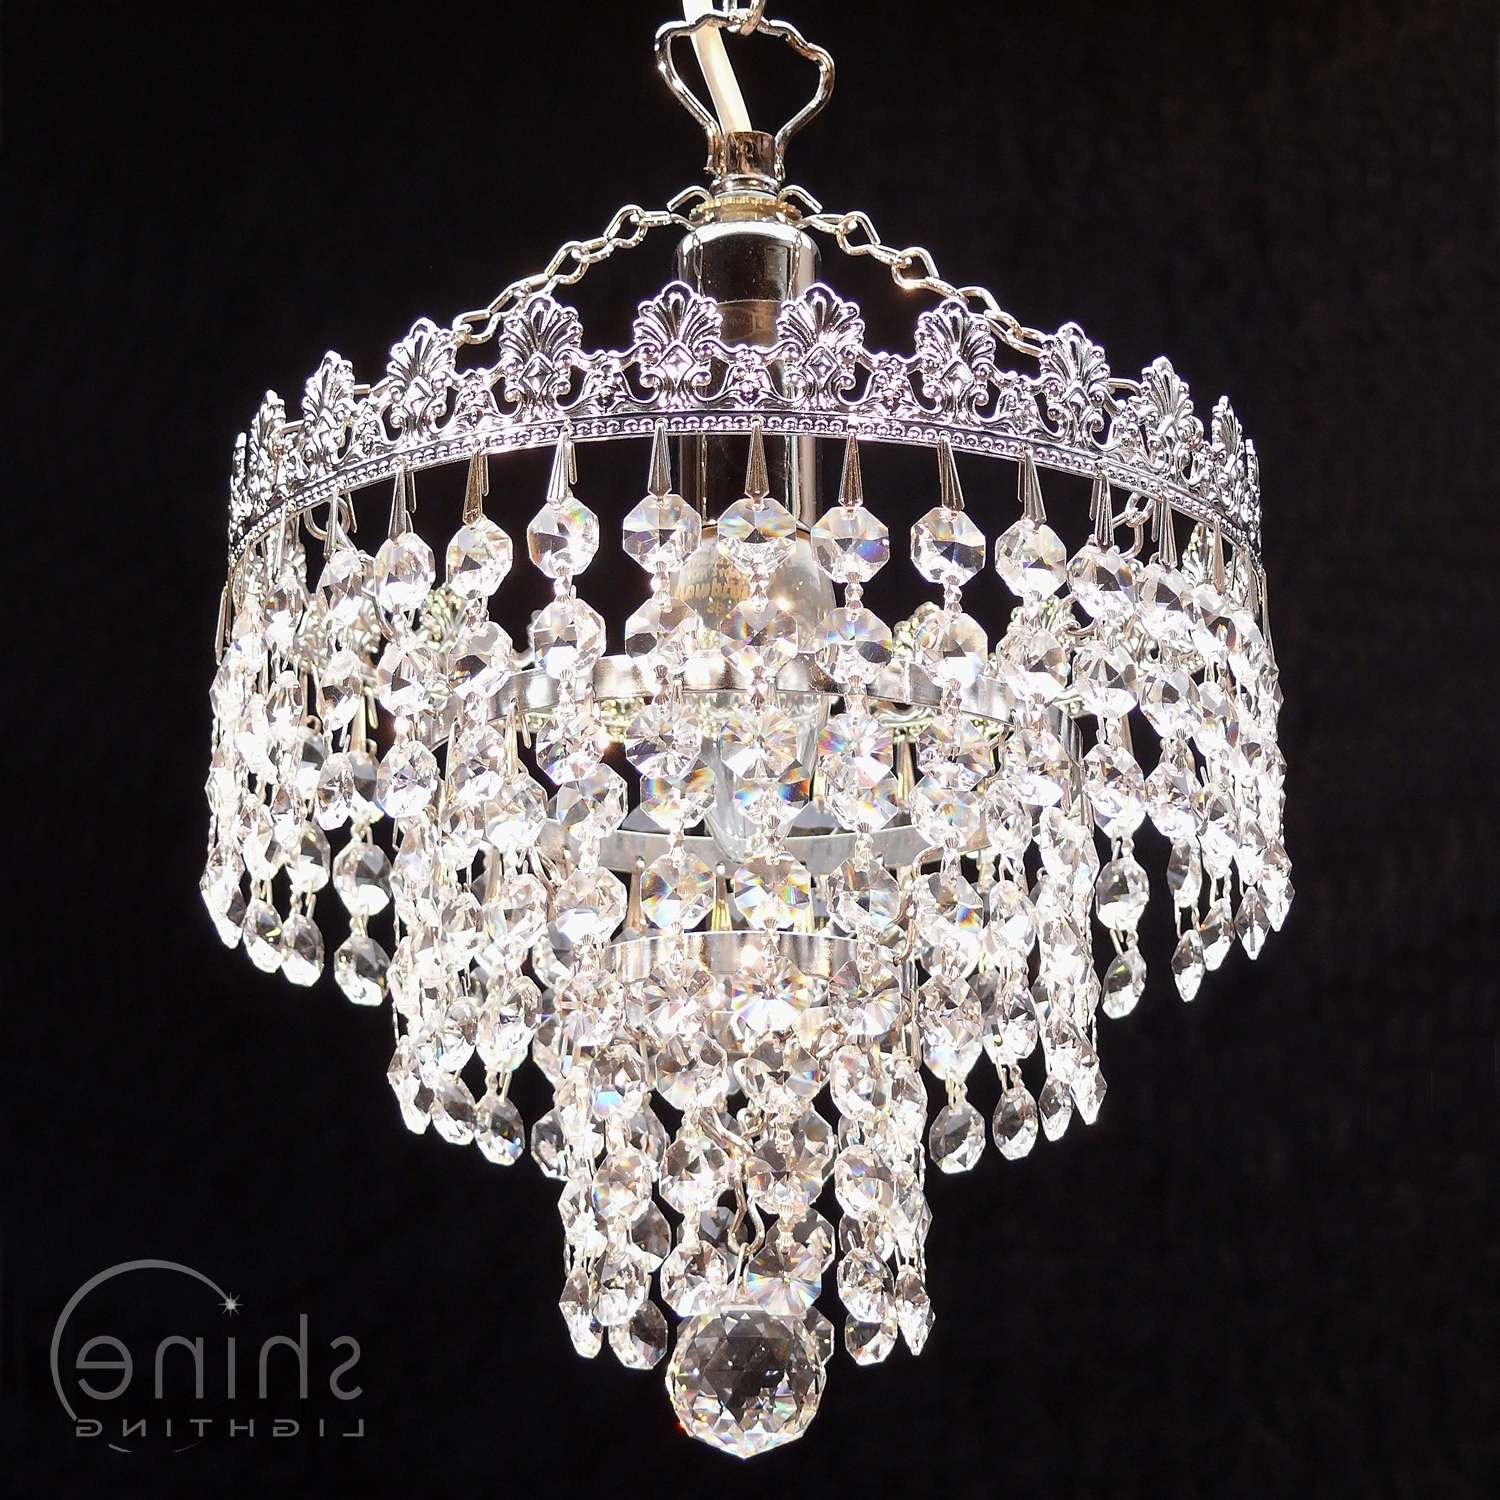 2019 8' 3 Tier Crystal Chandelier Throughout 3 Tier Crystal Chandelier (View 8 of 20)